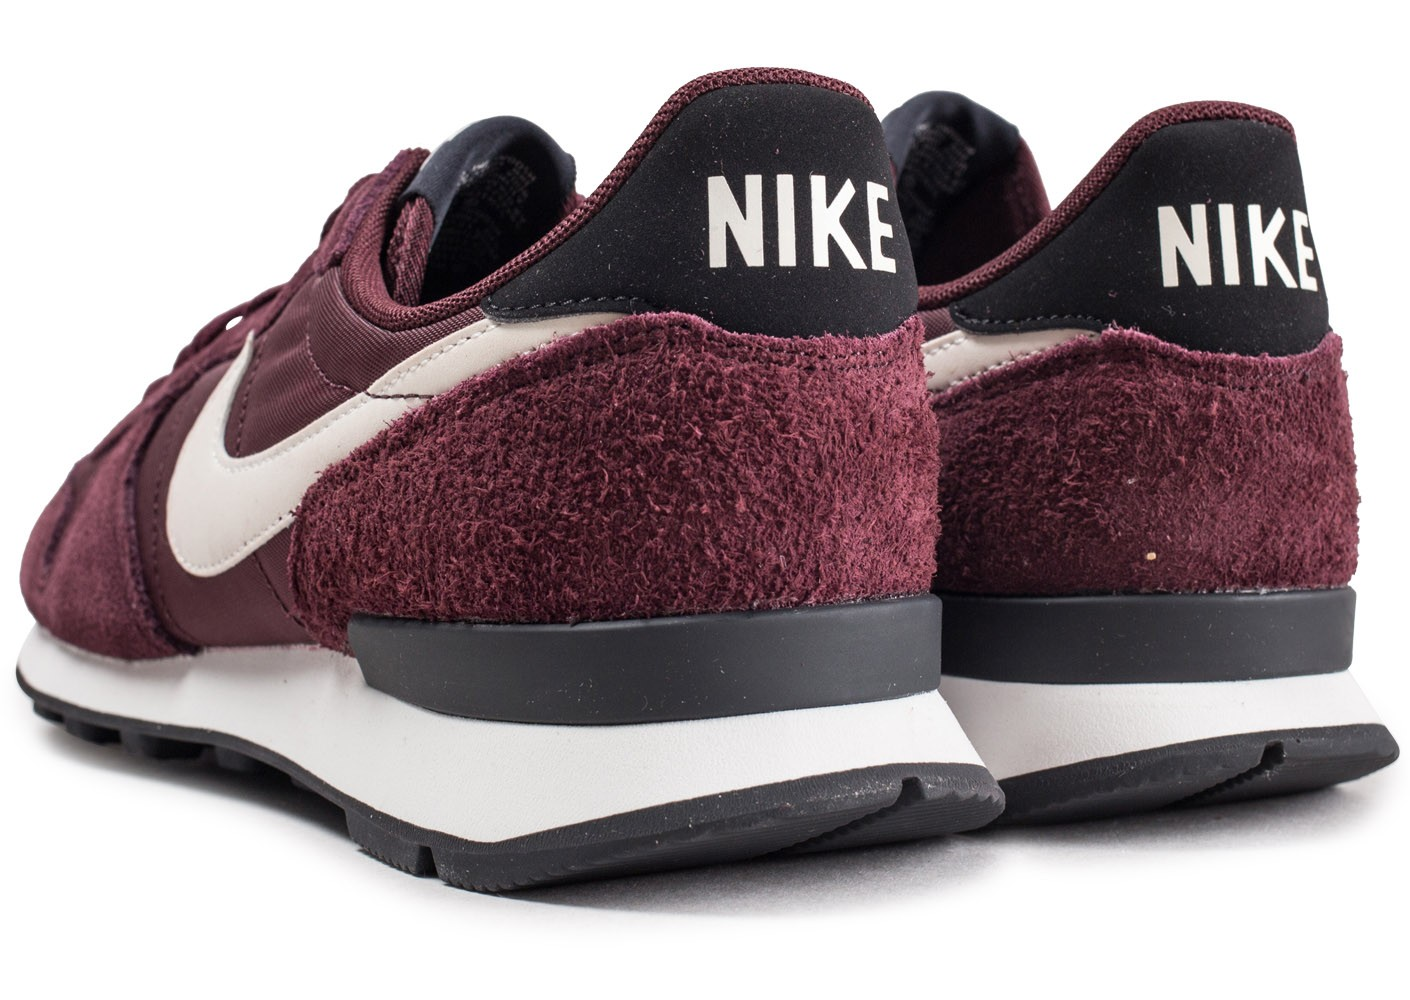 the best attitude 4eff0 50582 ... Chaussures Nike Internationalist bordeaux femme vue dessous ...